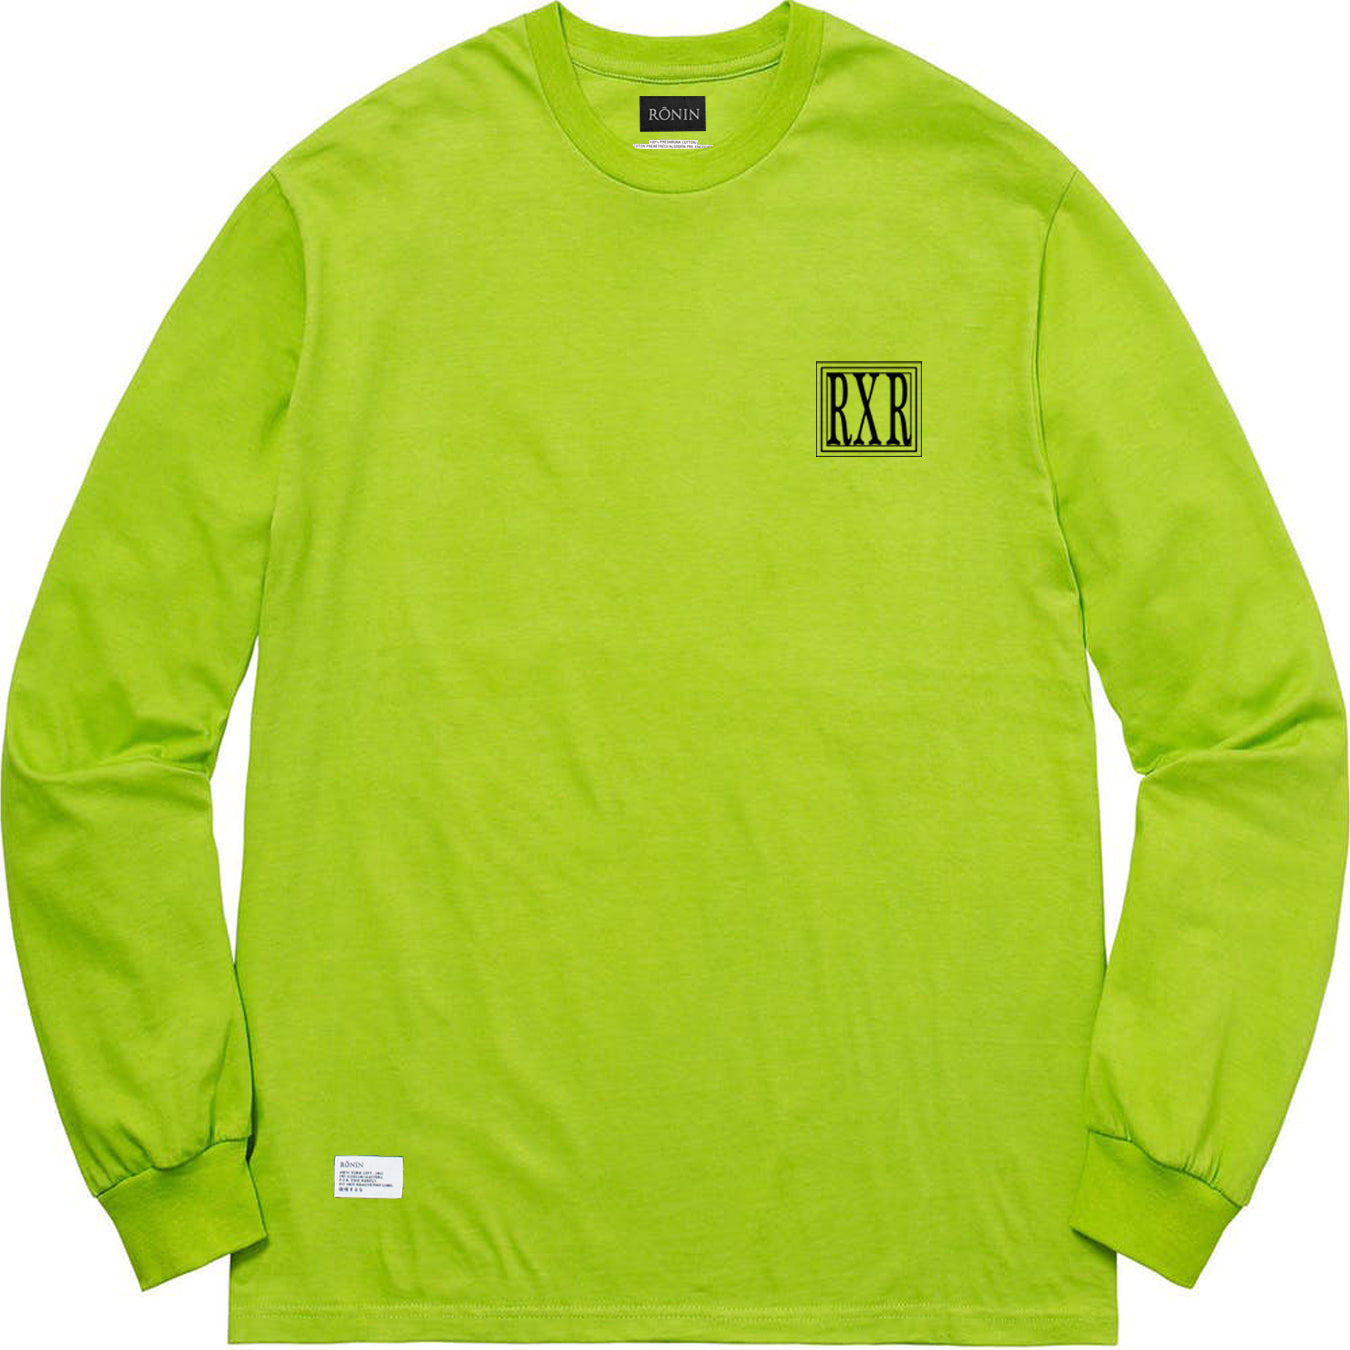 RxR Long Sleeve - Lime